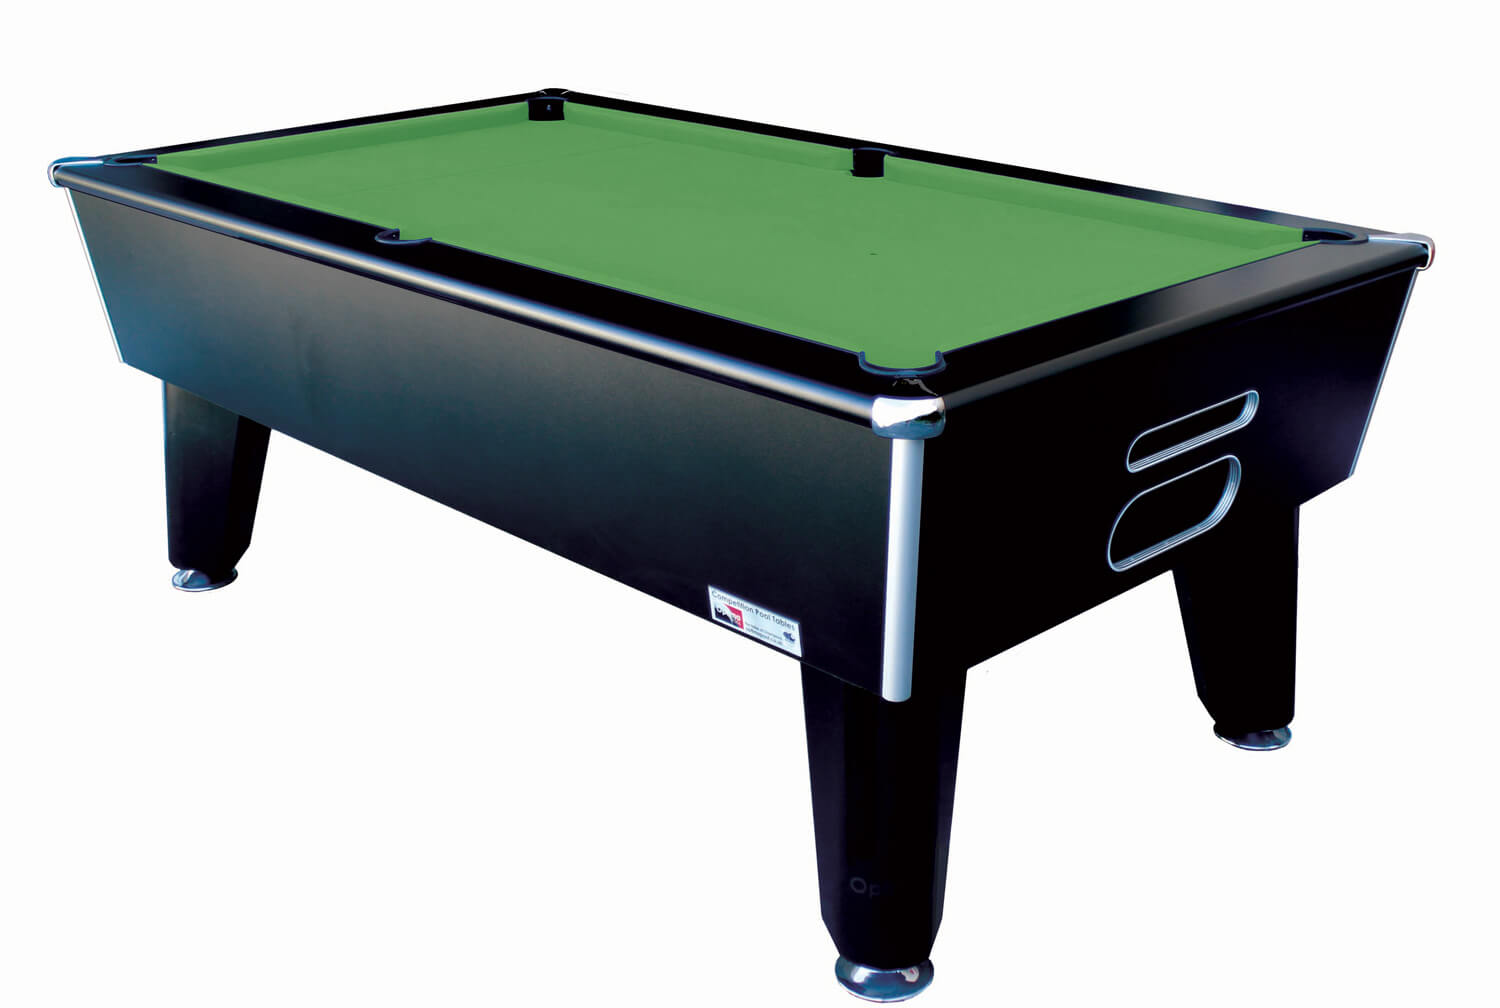 Classic domestic pool table 6 ft 7 ft liberty games - Pool table images ...